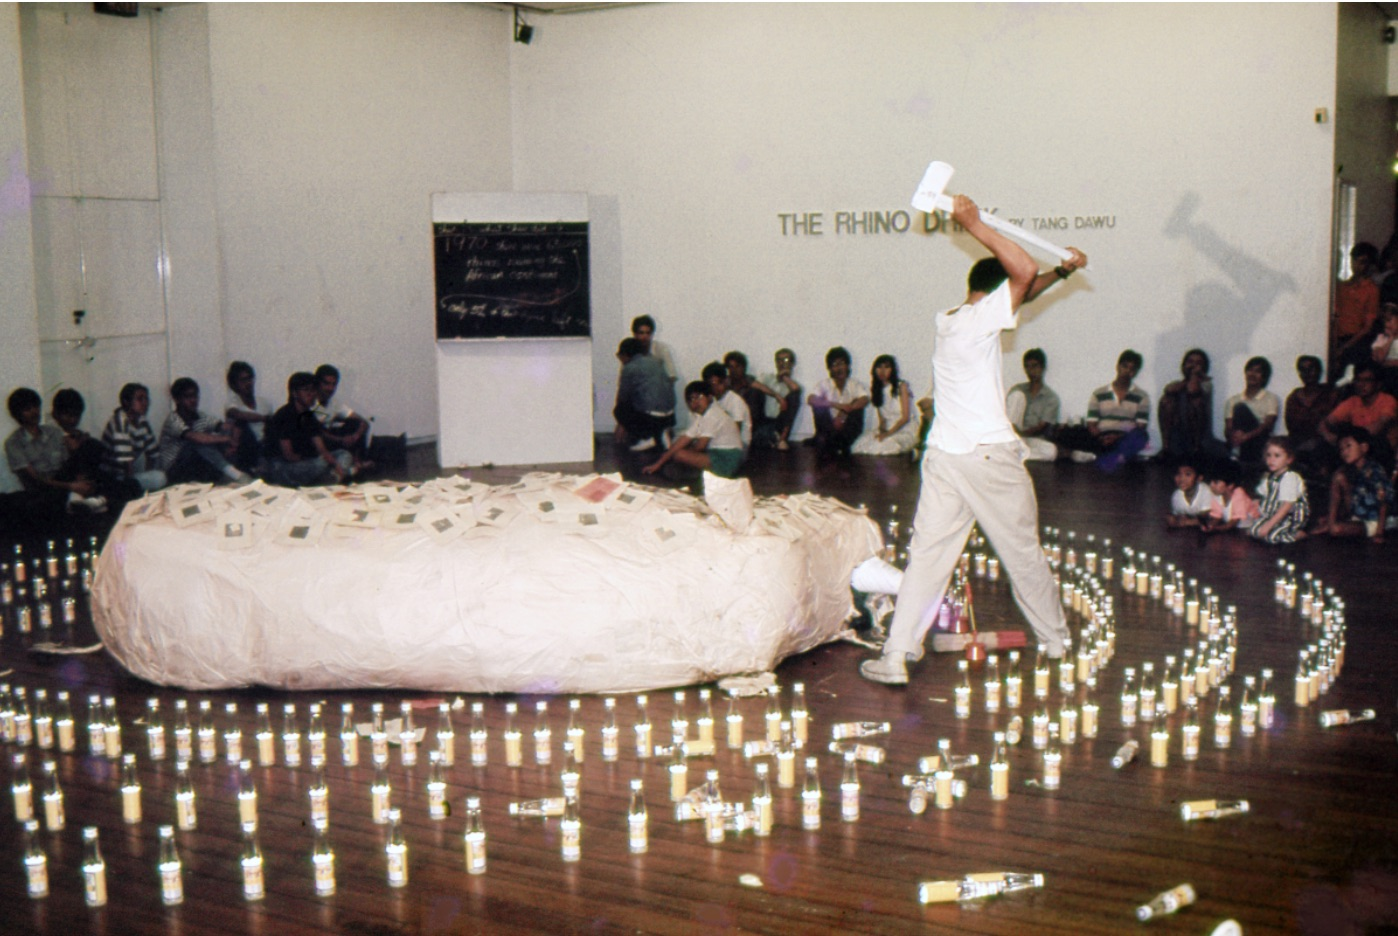 Latest exhibition at National Gallery Singapore explores intersections between art and social activism in Asia